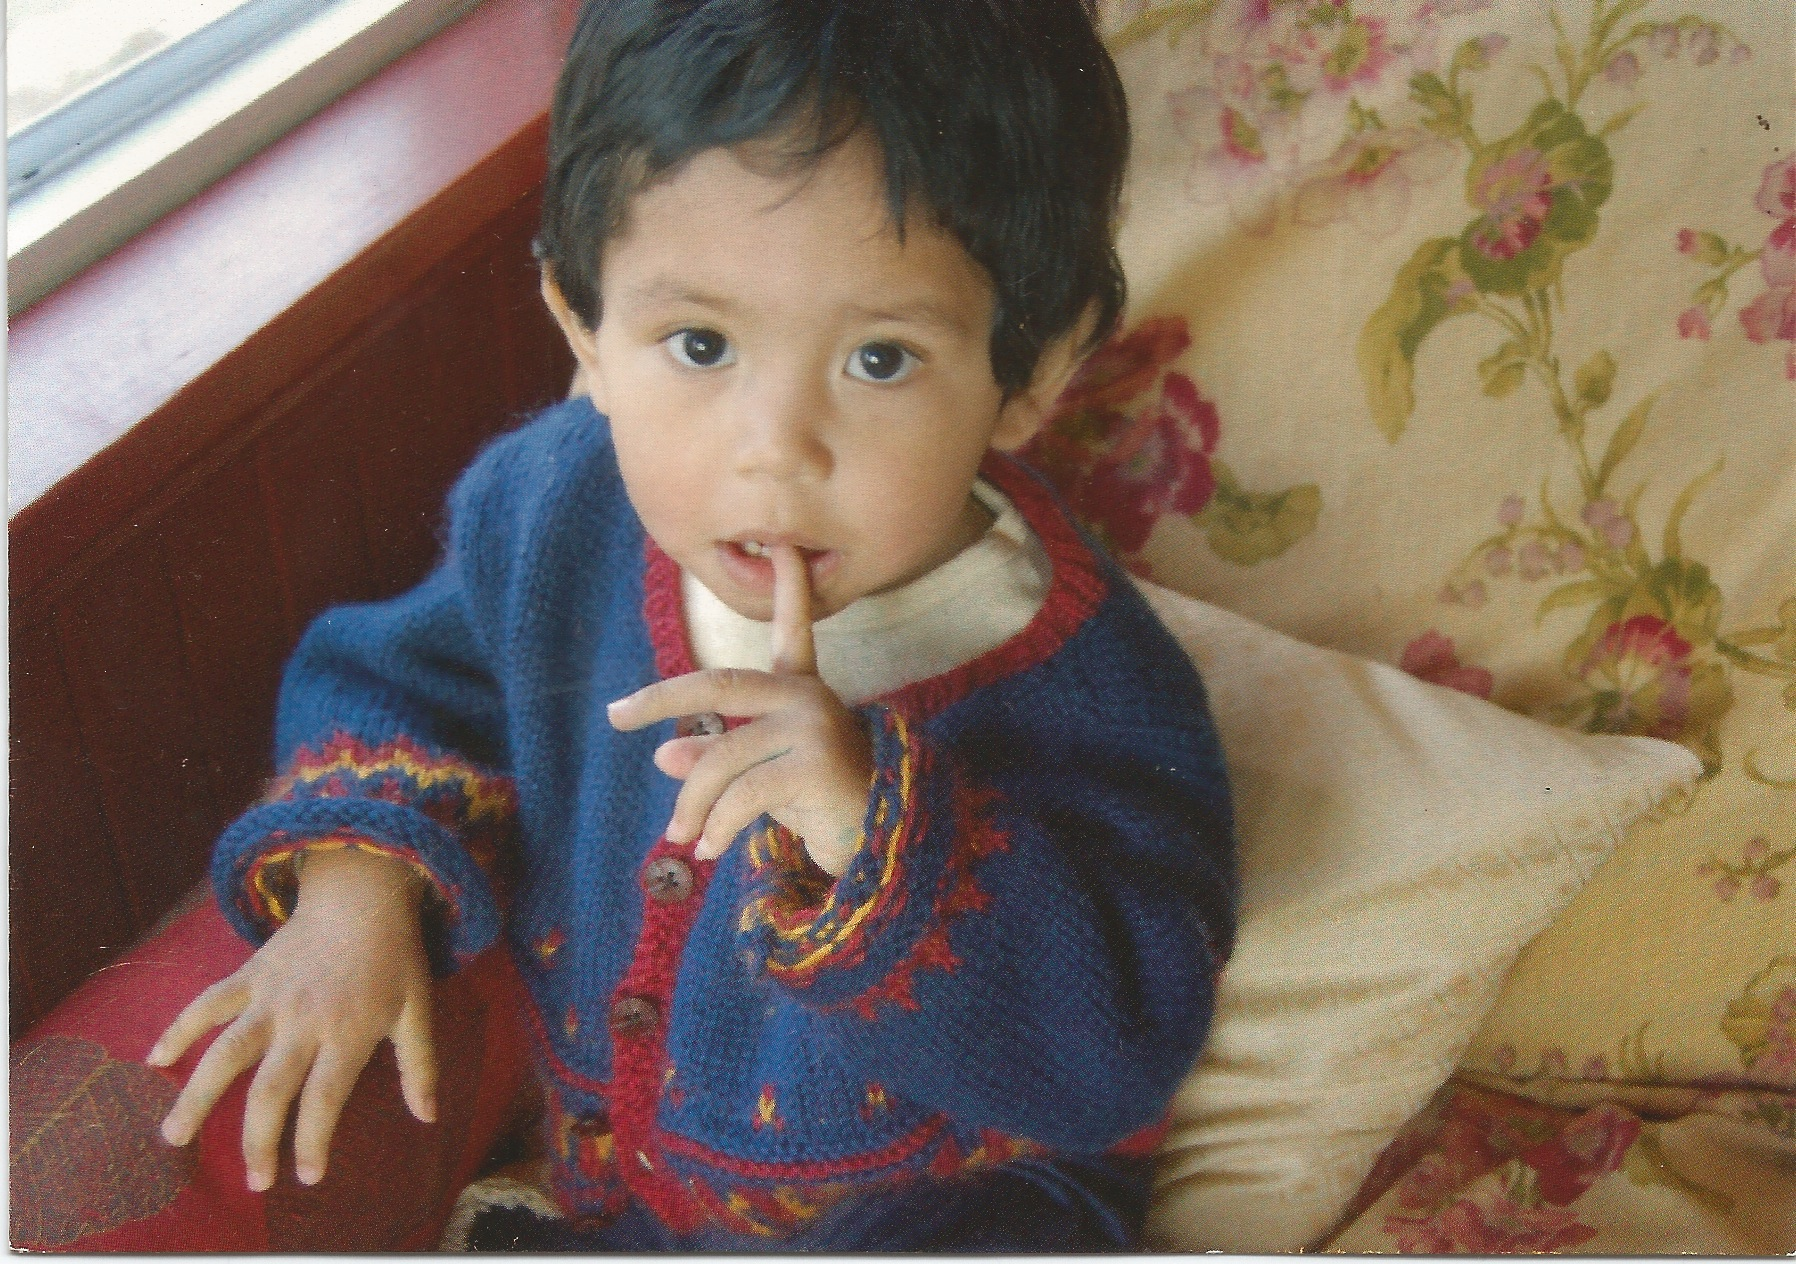 Baby Javi Sweater